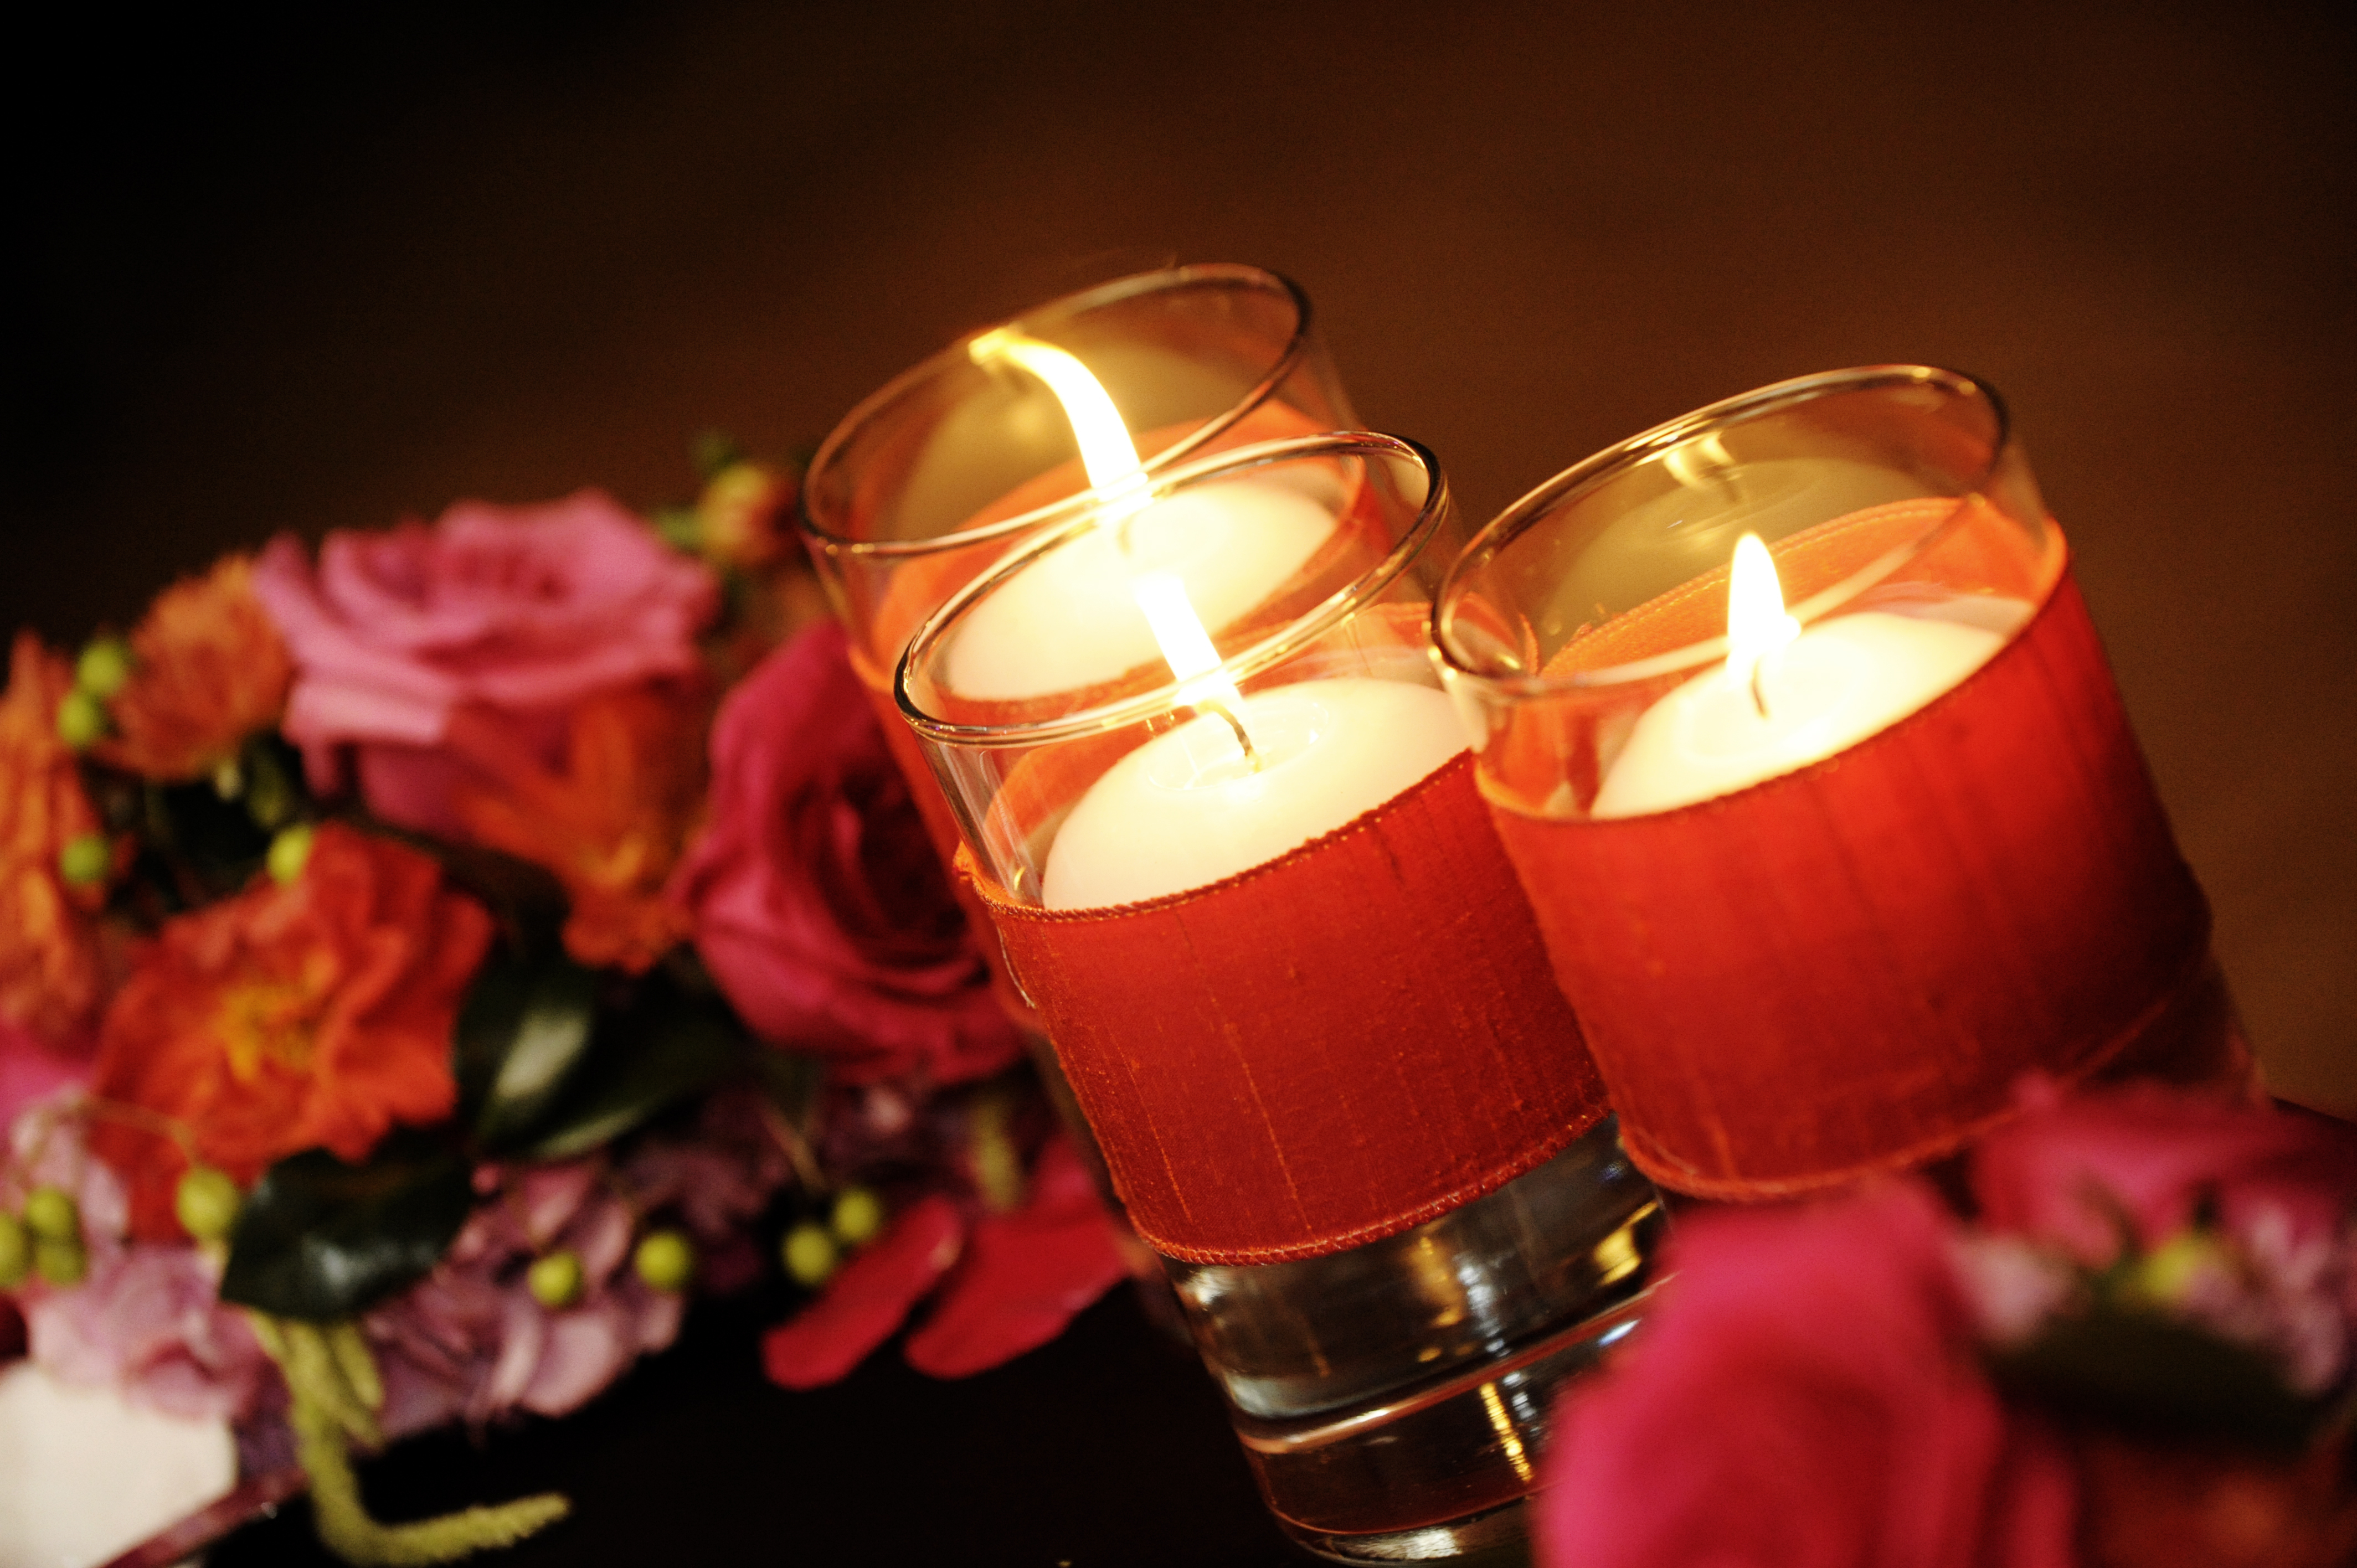 Photography, brown, Modern, Wedding, Candle, Votive, Fushia, Klk, Vibrant, Luxury, Kristi, Klemens